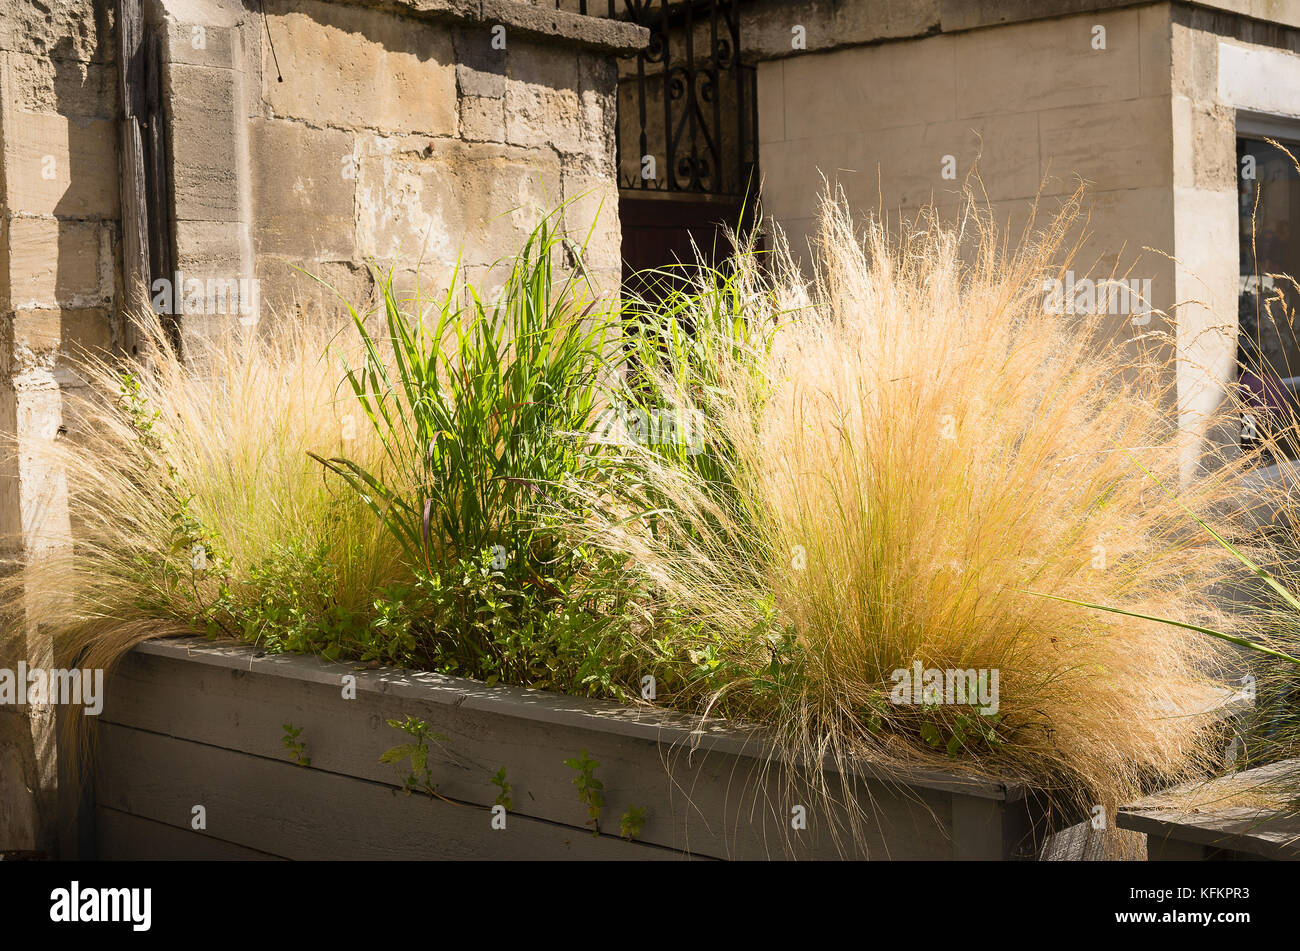 Ornamental grasses provide an attractive natural screen from the road in Bradford on Avon Wiltshire England UK - Stock Image